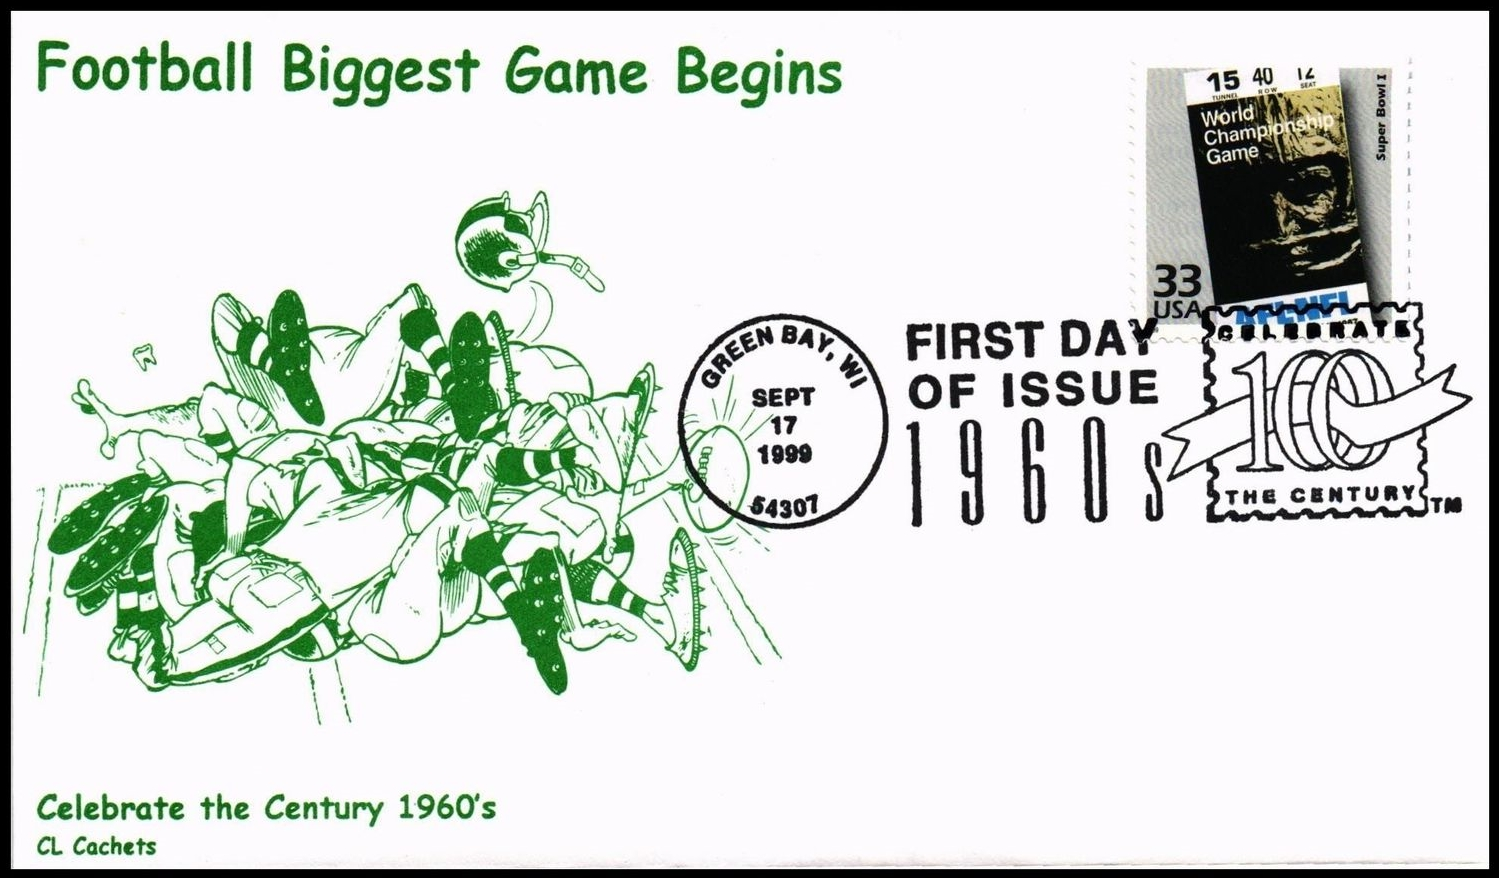 United States - Scott #3188l (1999) first day cover